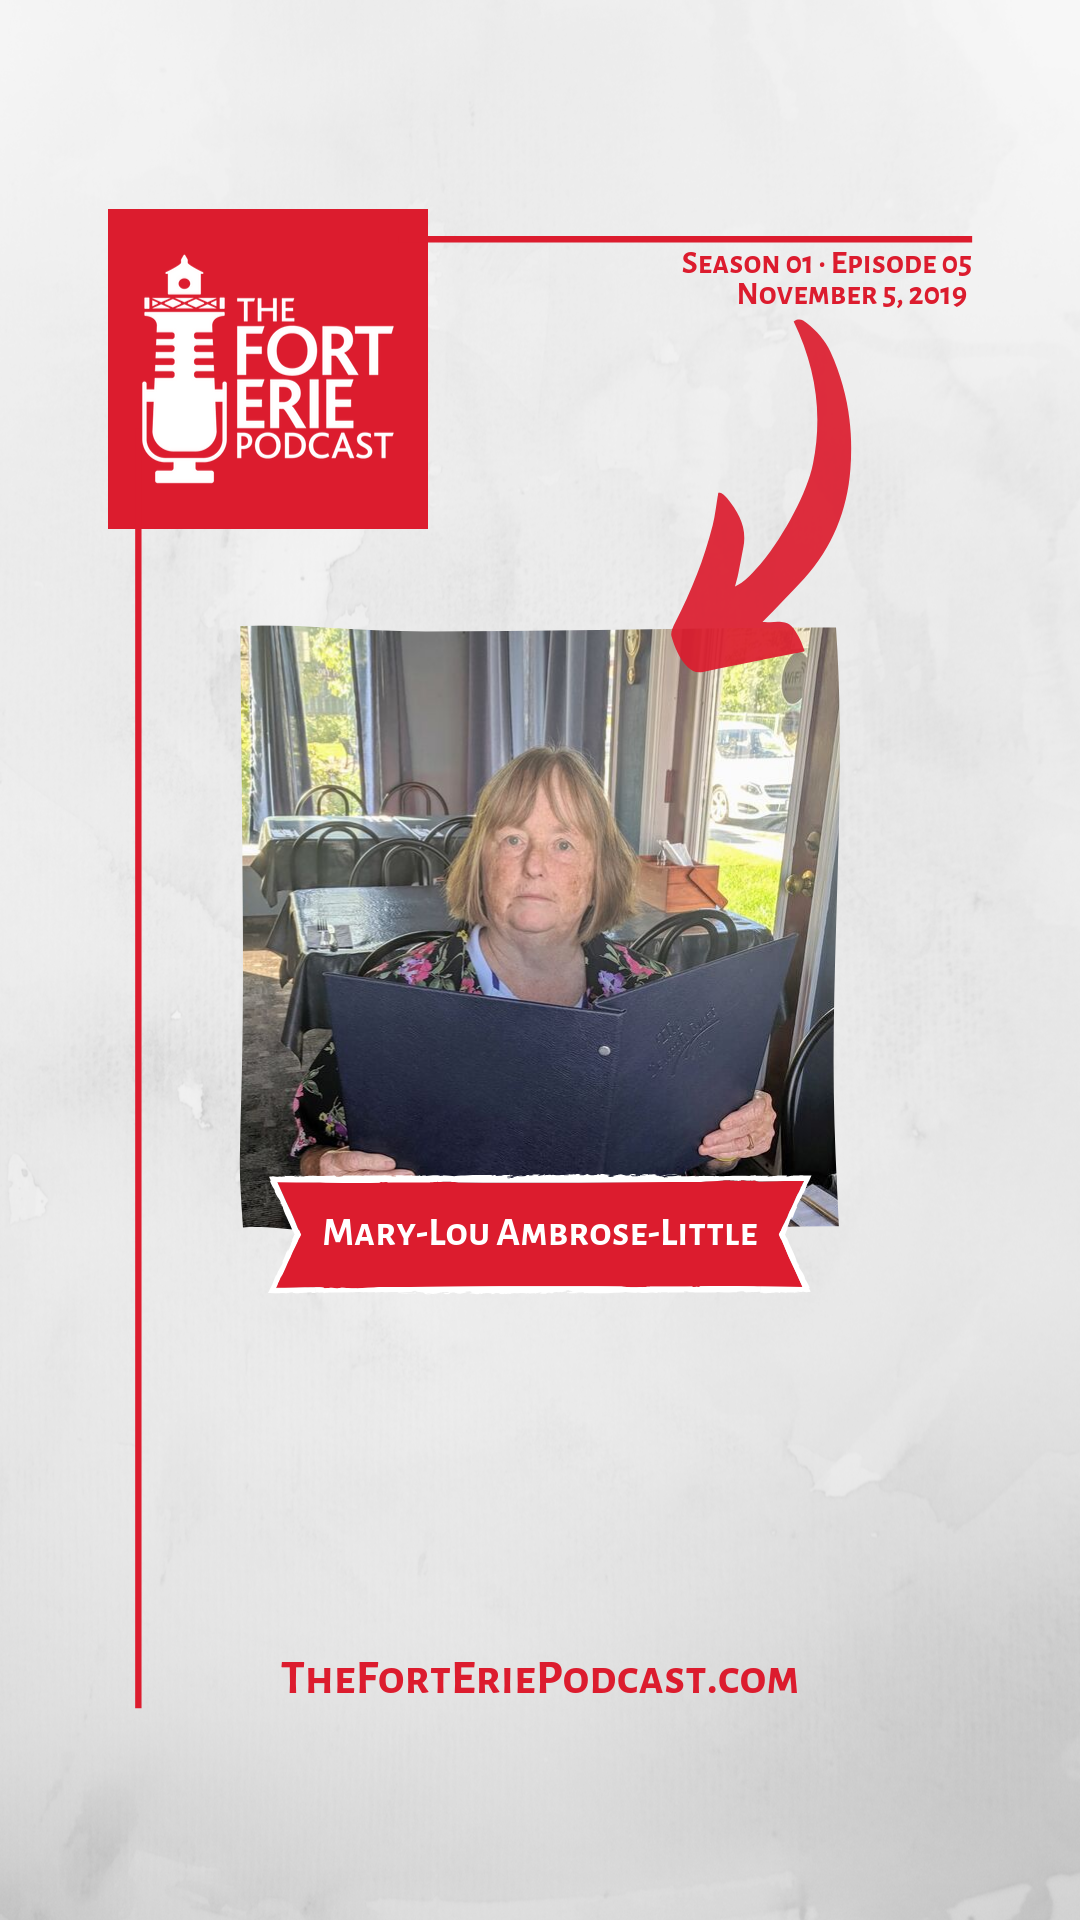 It seems that Mary-Lou Ambrose-Little is most often connected to the Ridgeway Farmers\' Market, but did you know that she\'s also responsible for the Stevensville Wednesday Market and so much more? As a member of the Ridgeway Business Improvement Area (BIA), Mary-Lou is passionate about her role in the community. Join me as she and I have a chat at The Scuttlebutt in Stevensville about everything from her ties to this area to her favorite beer at Brimstone Brewing.